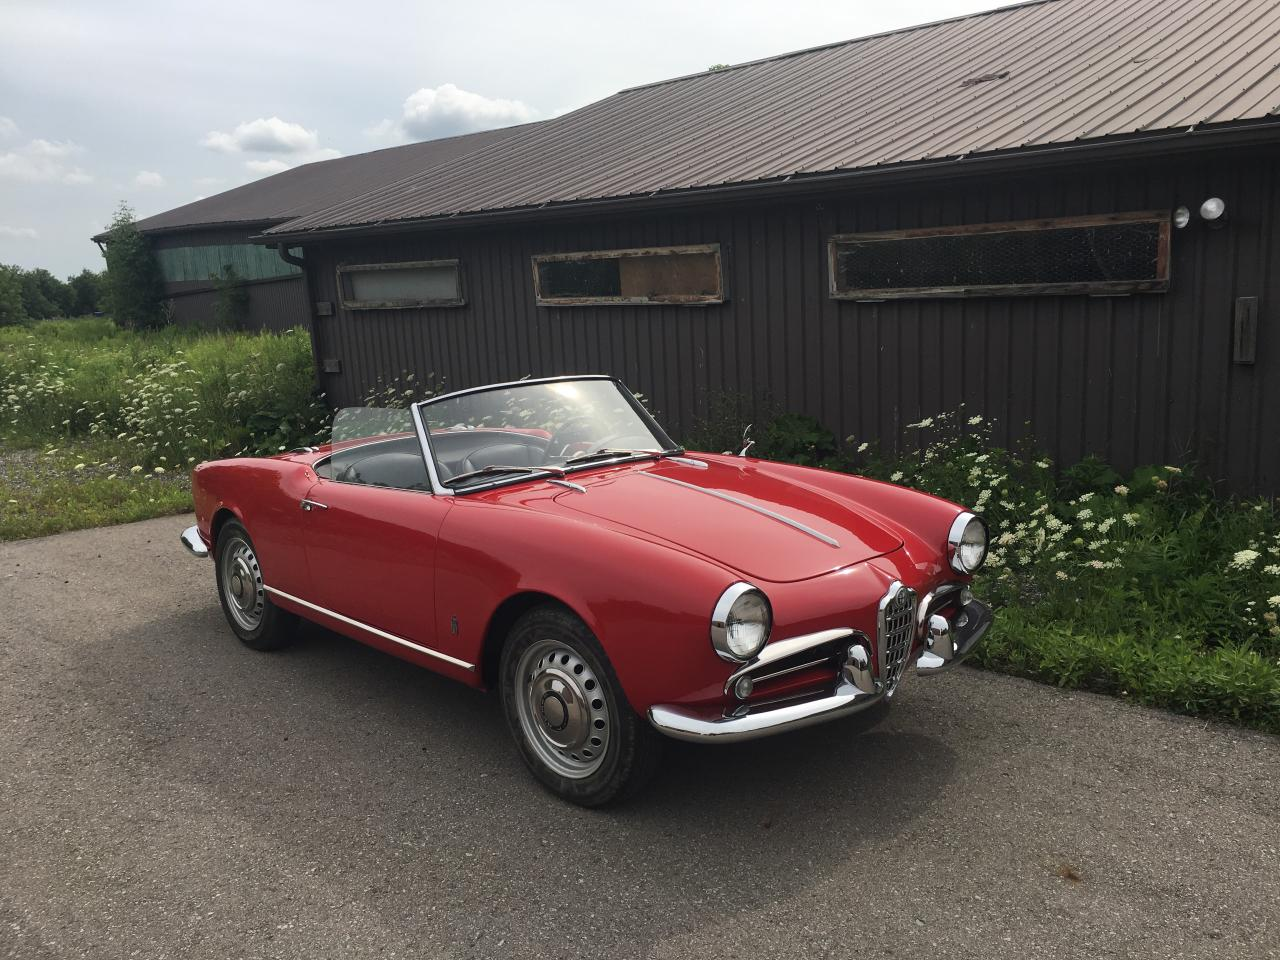 Photo of Red 1959 Alfa Romeo Spider Giulietta Spider 1300